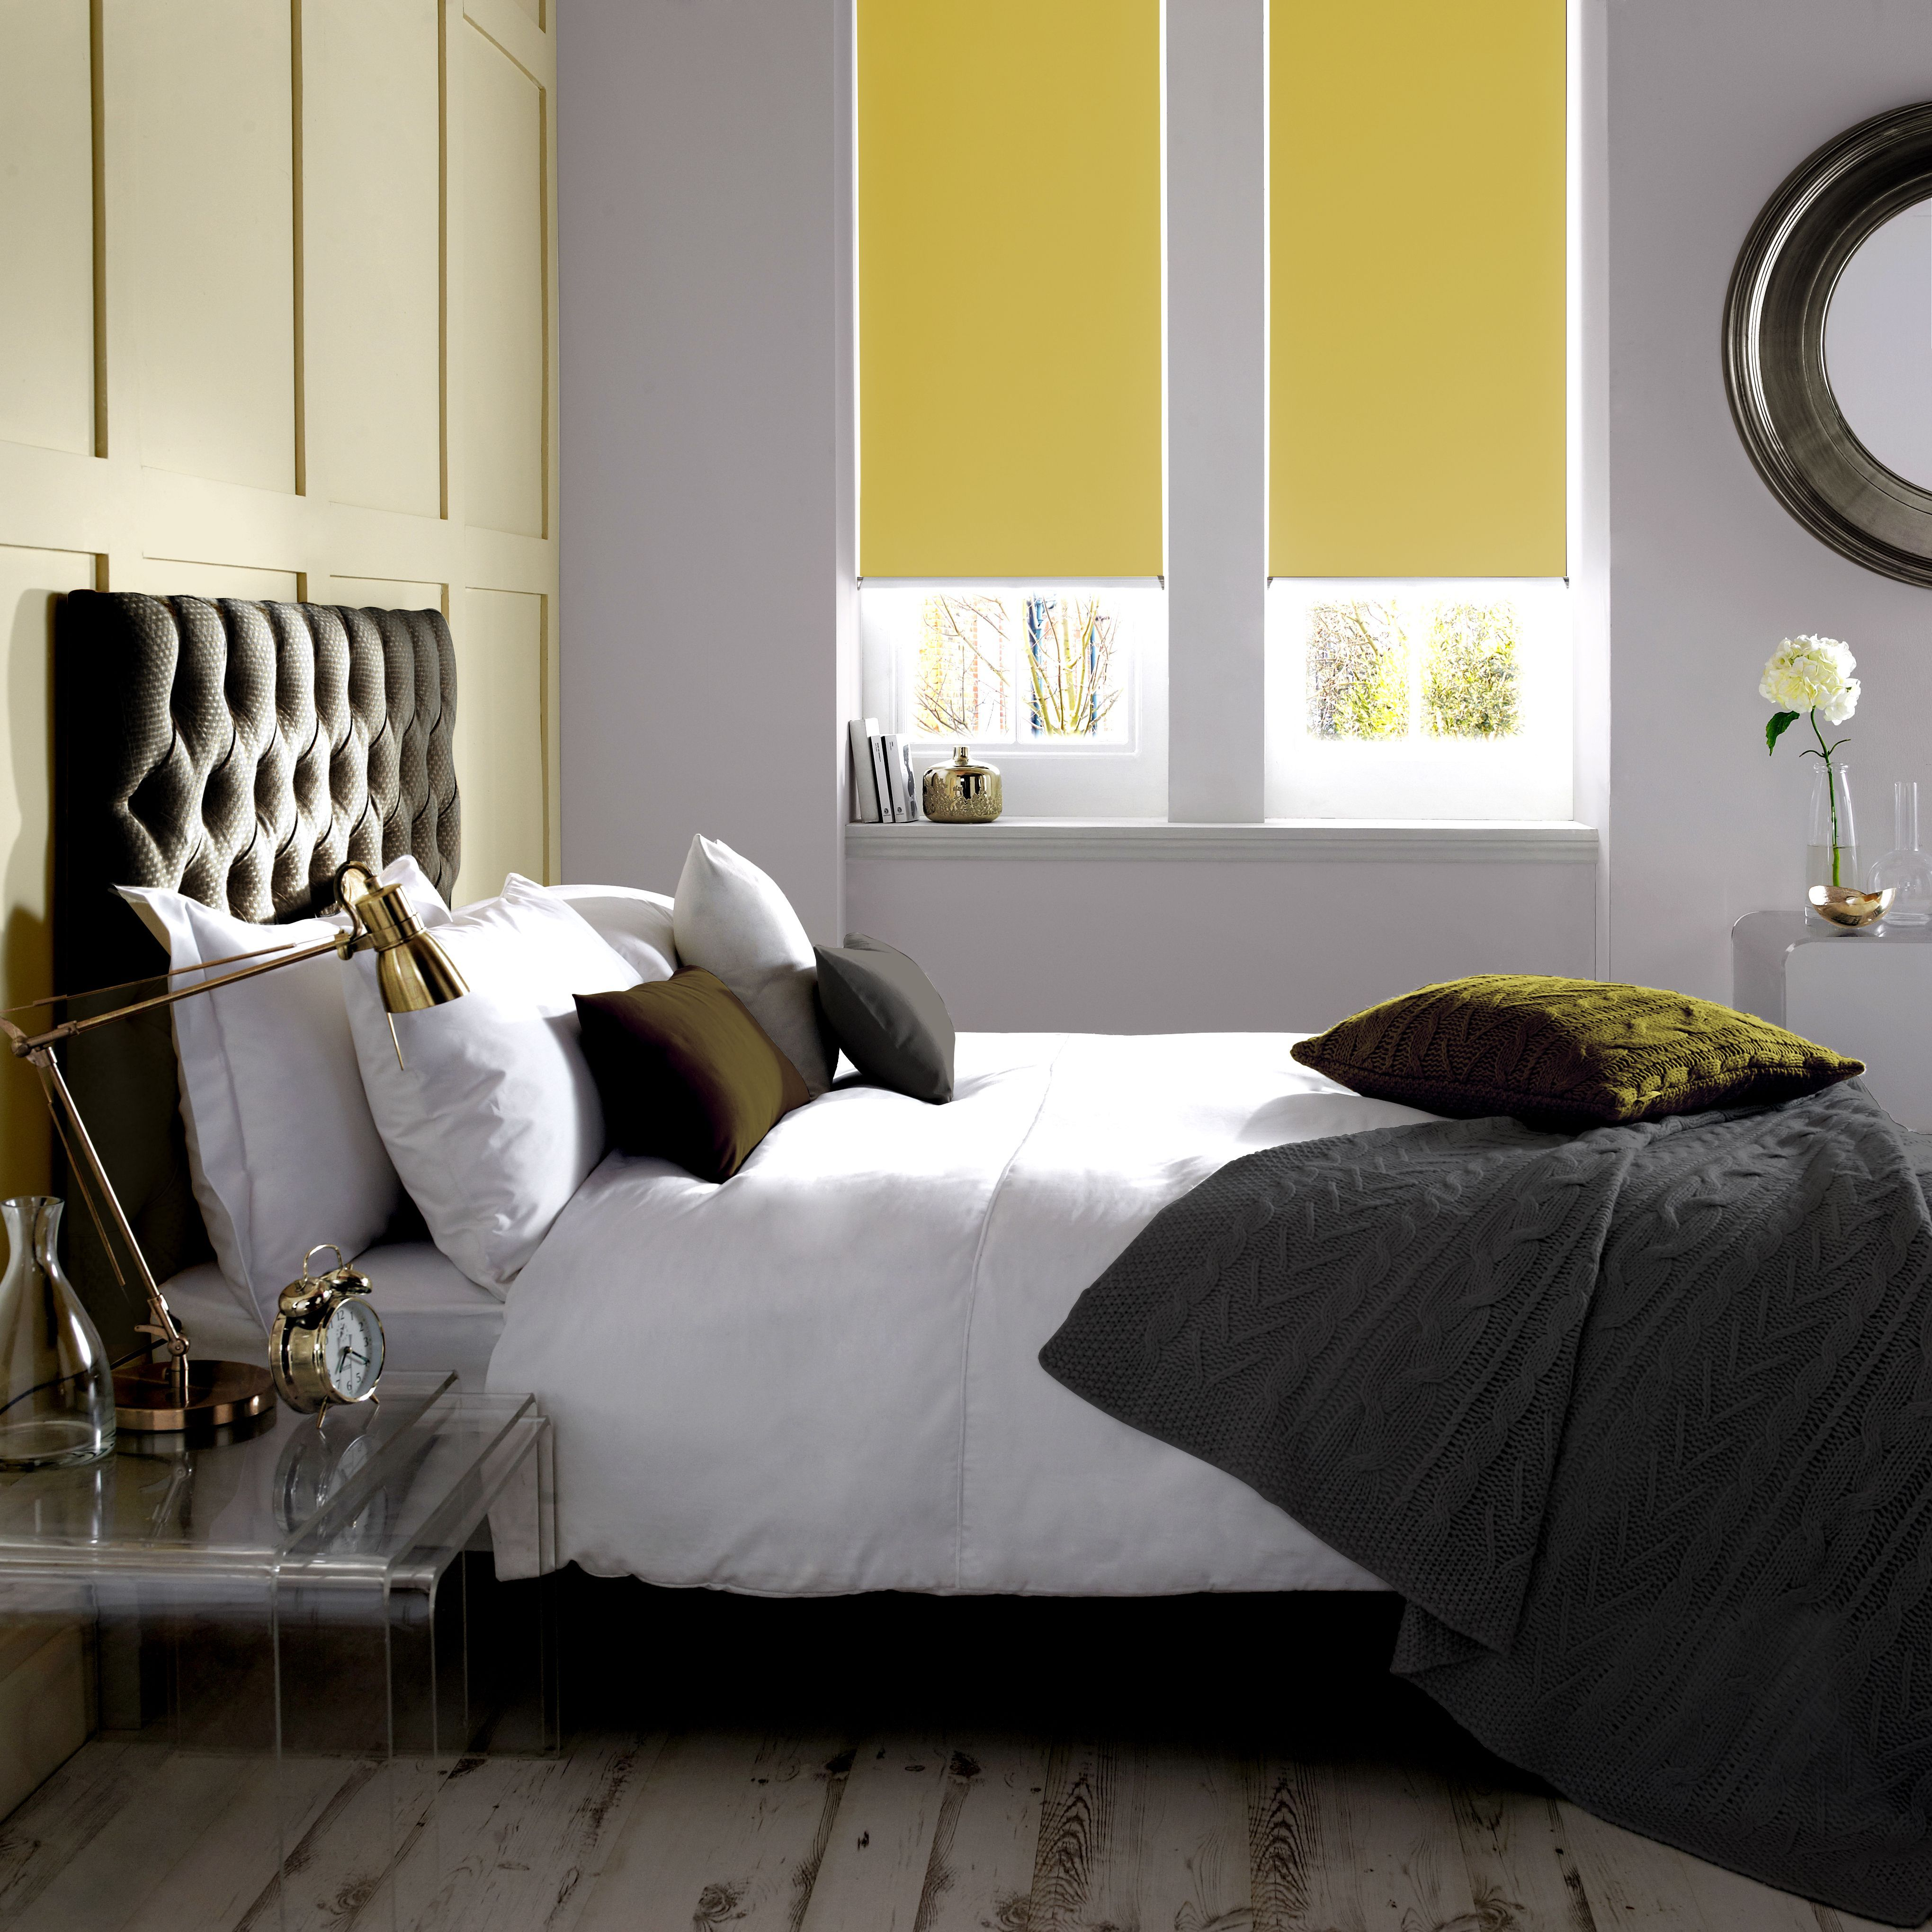 Banlight duo roller blinds from style studio yellow blinds roller